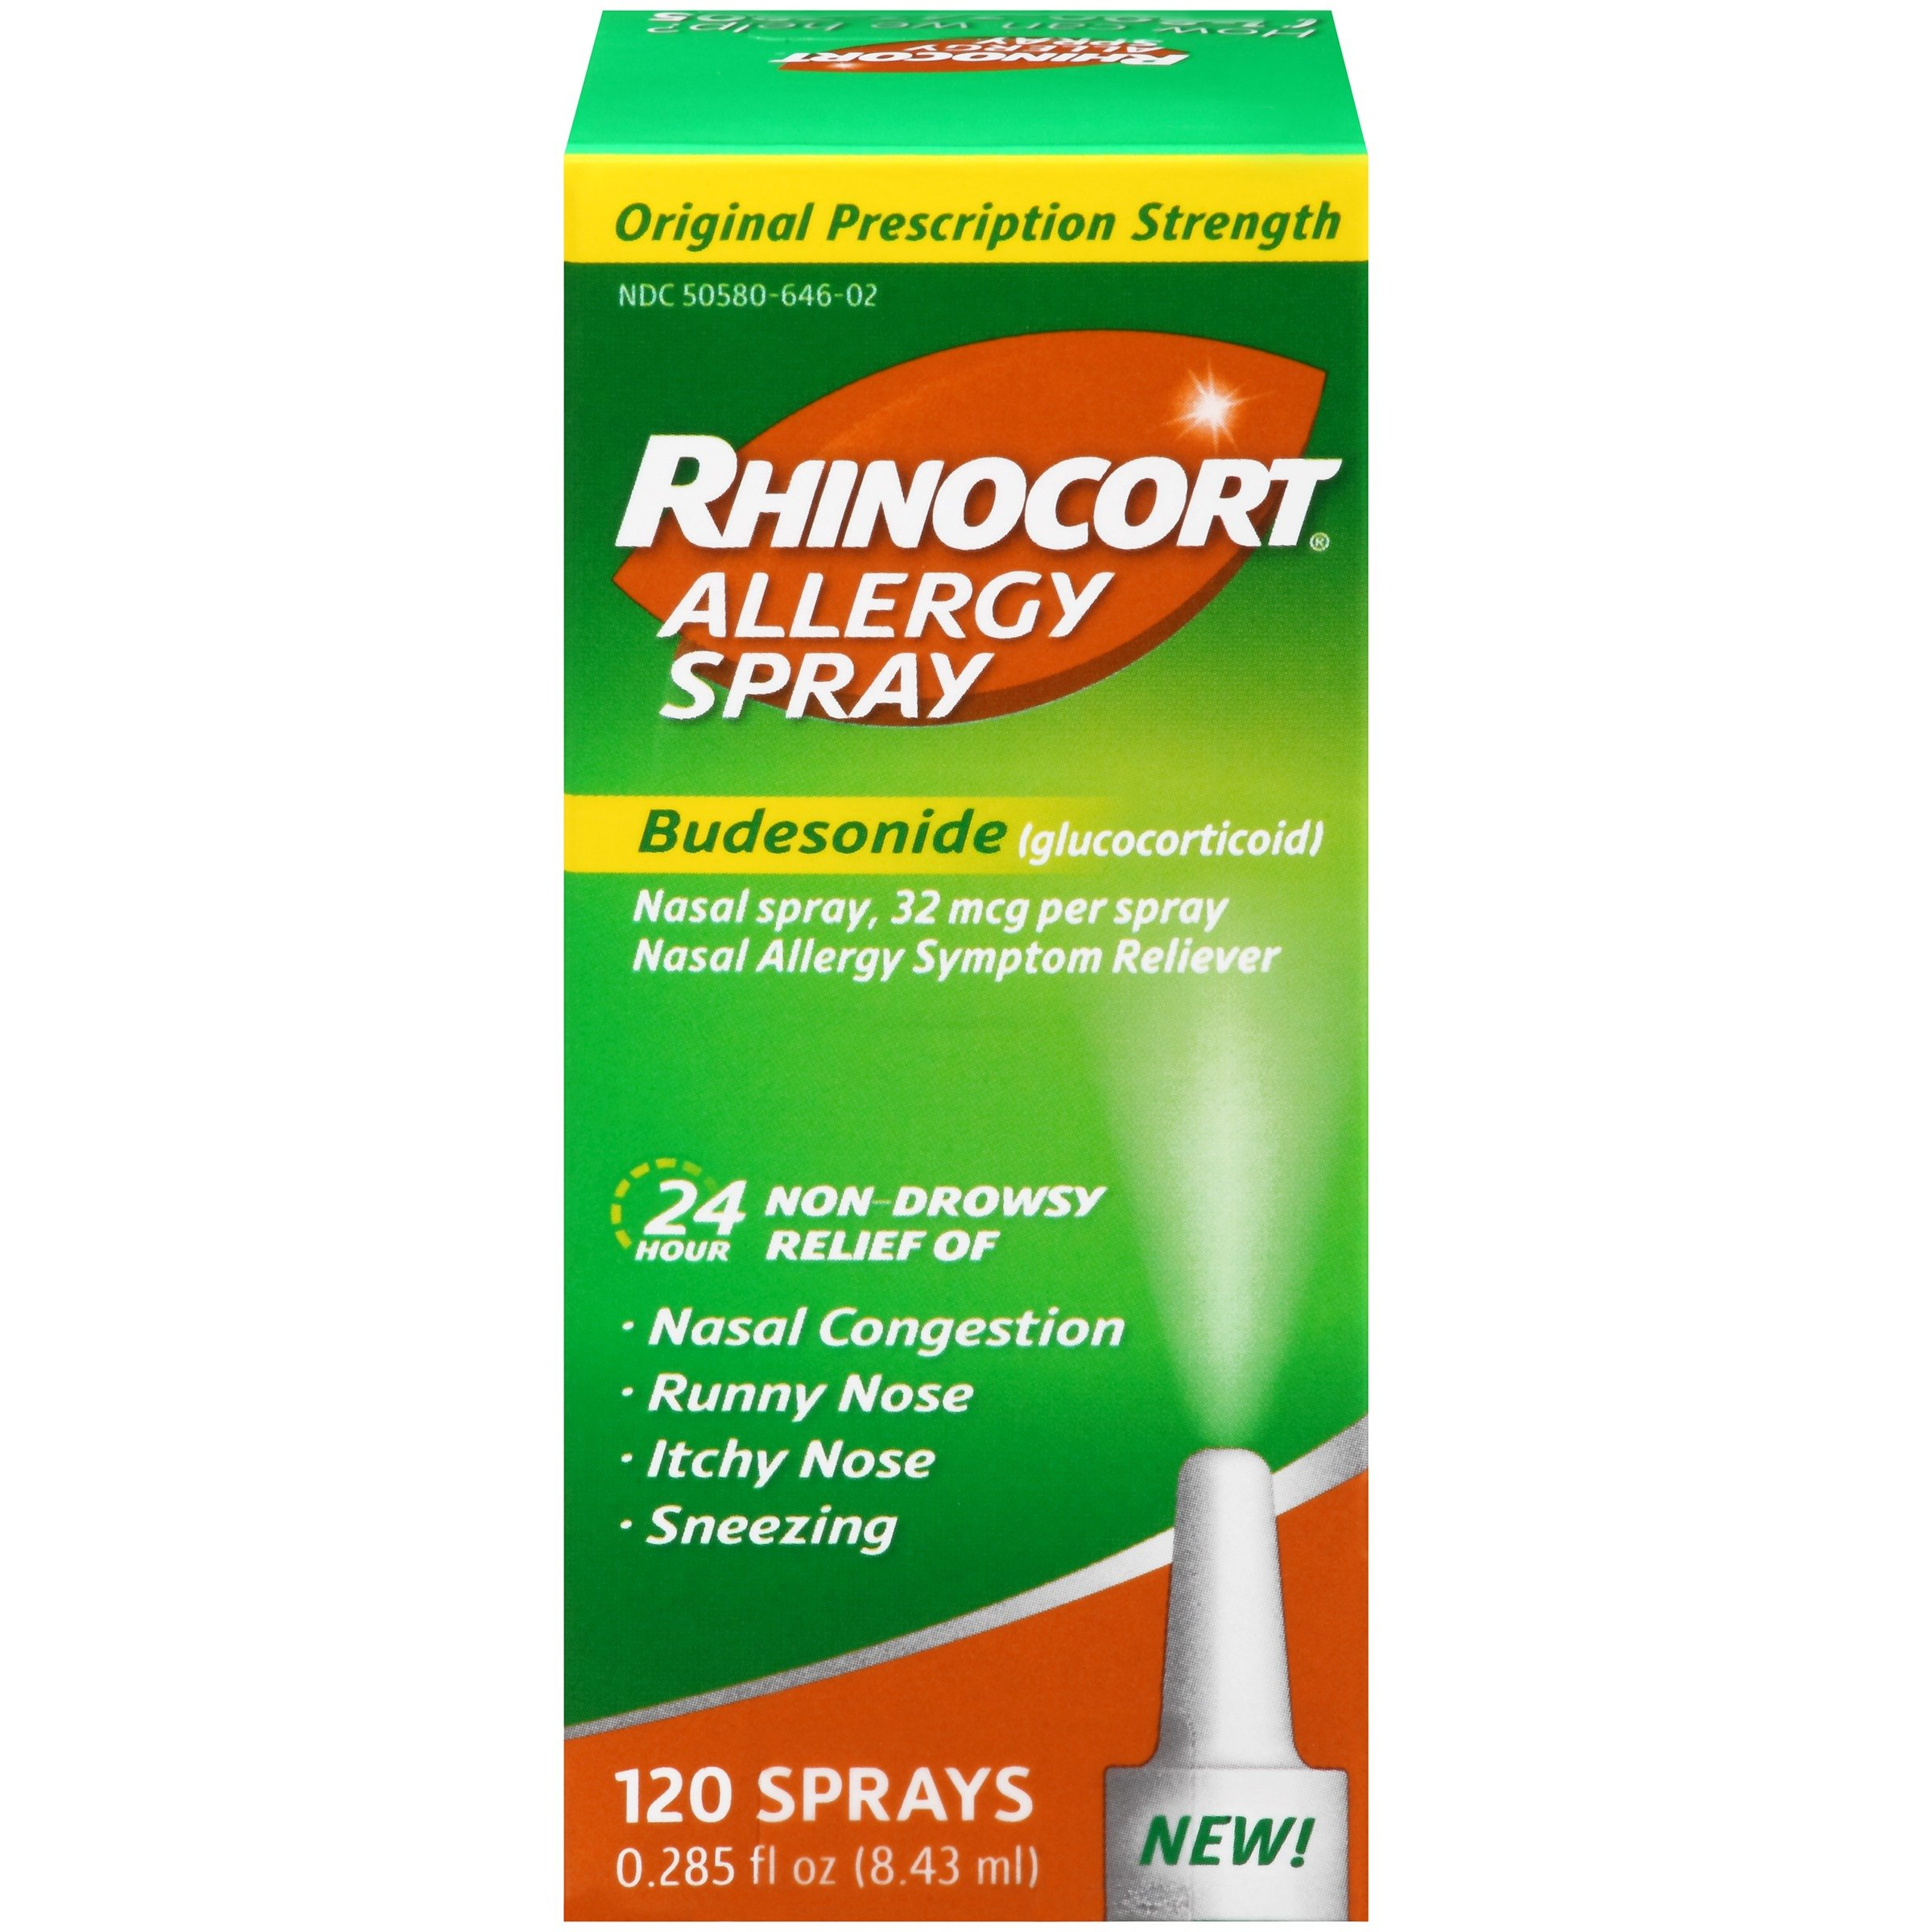 Rhinocort Allergy Nasal Spray, 24 Hour Relief, 120 Spray